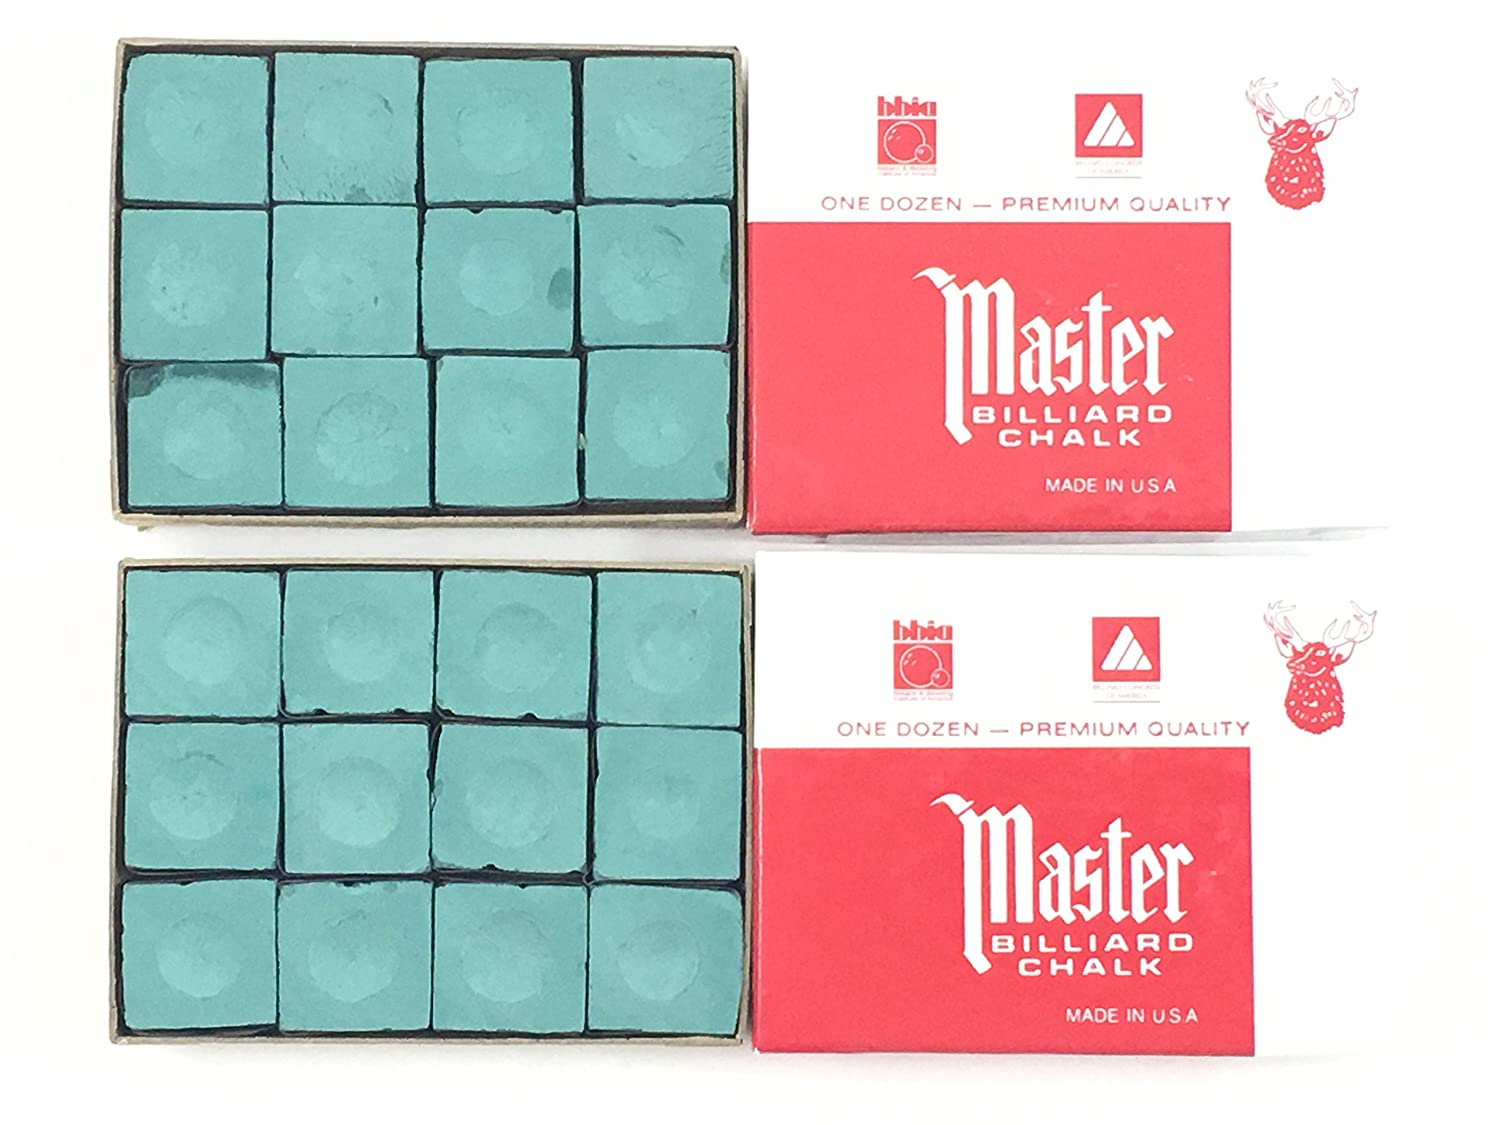 Made in the USA 2 Boxes of Master Chalk 24 Pieces for Pool Cues and Billiards Sticks Tips